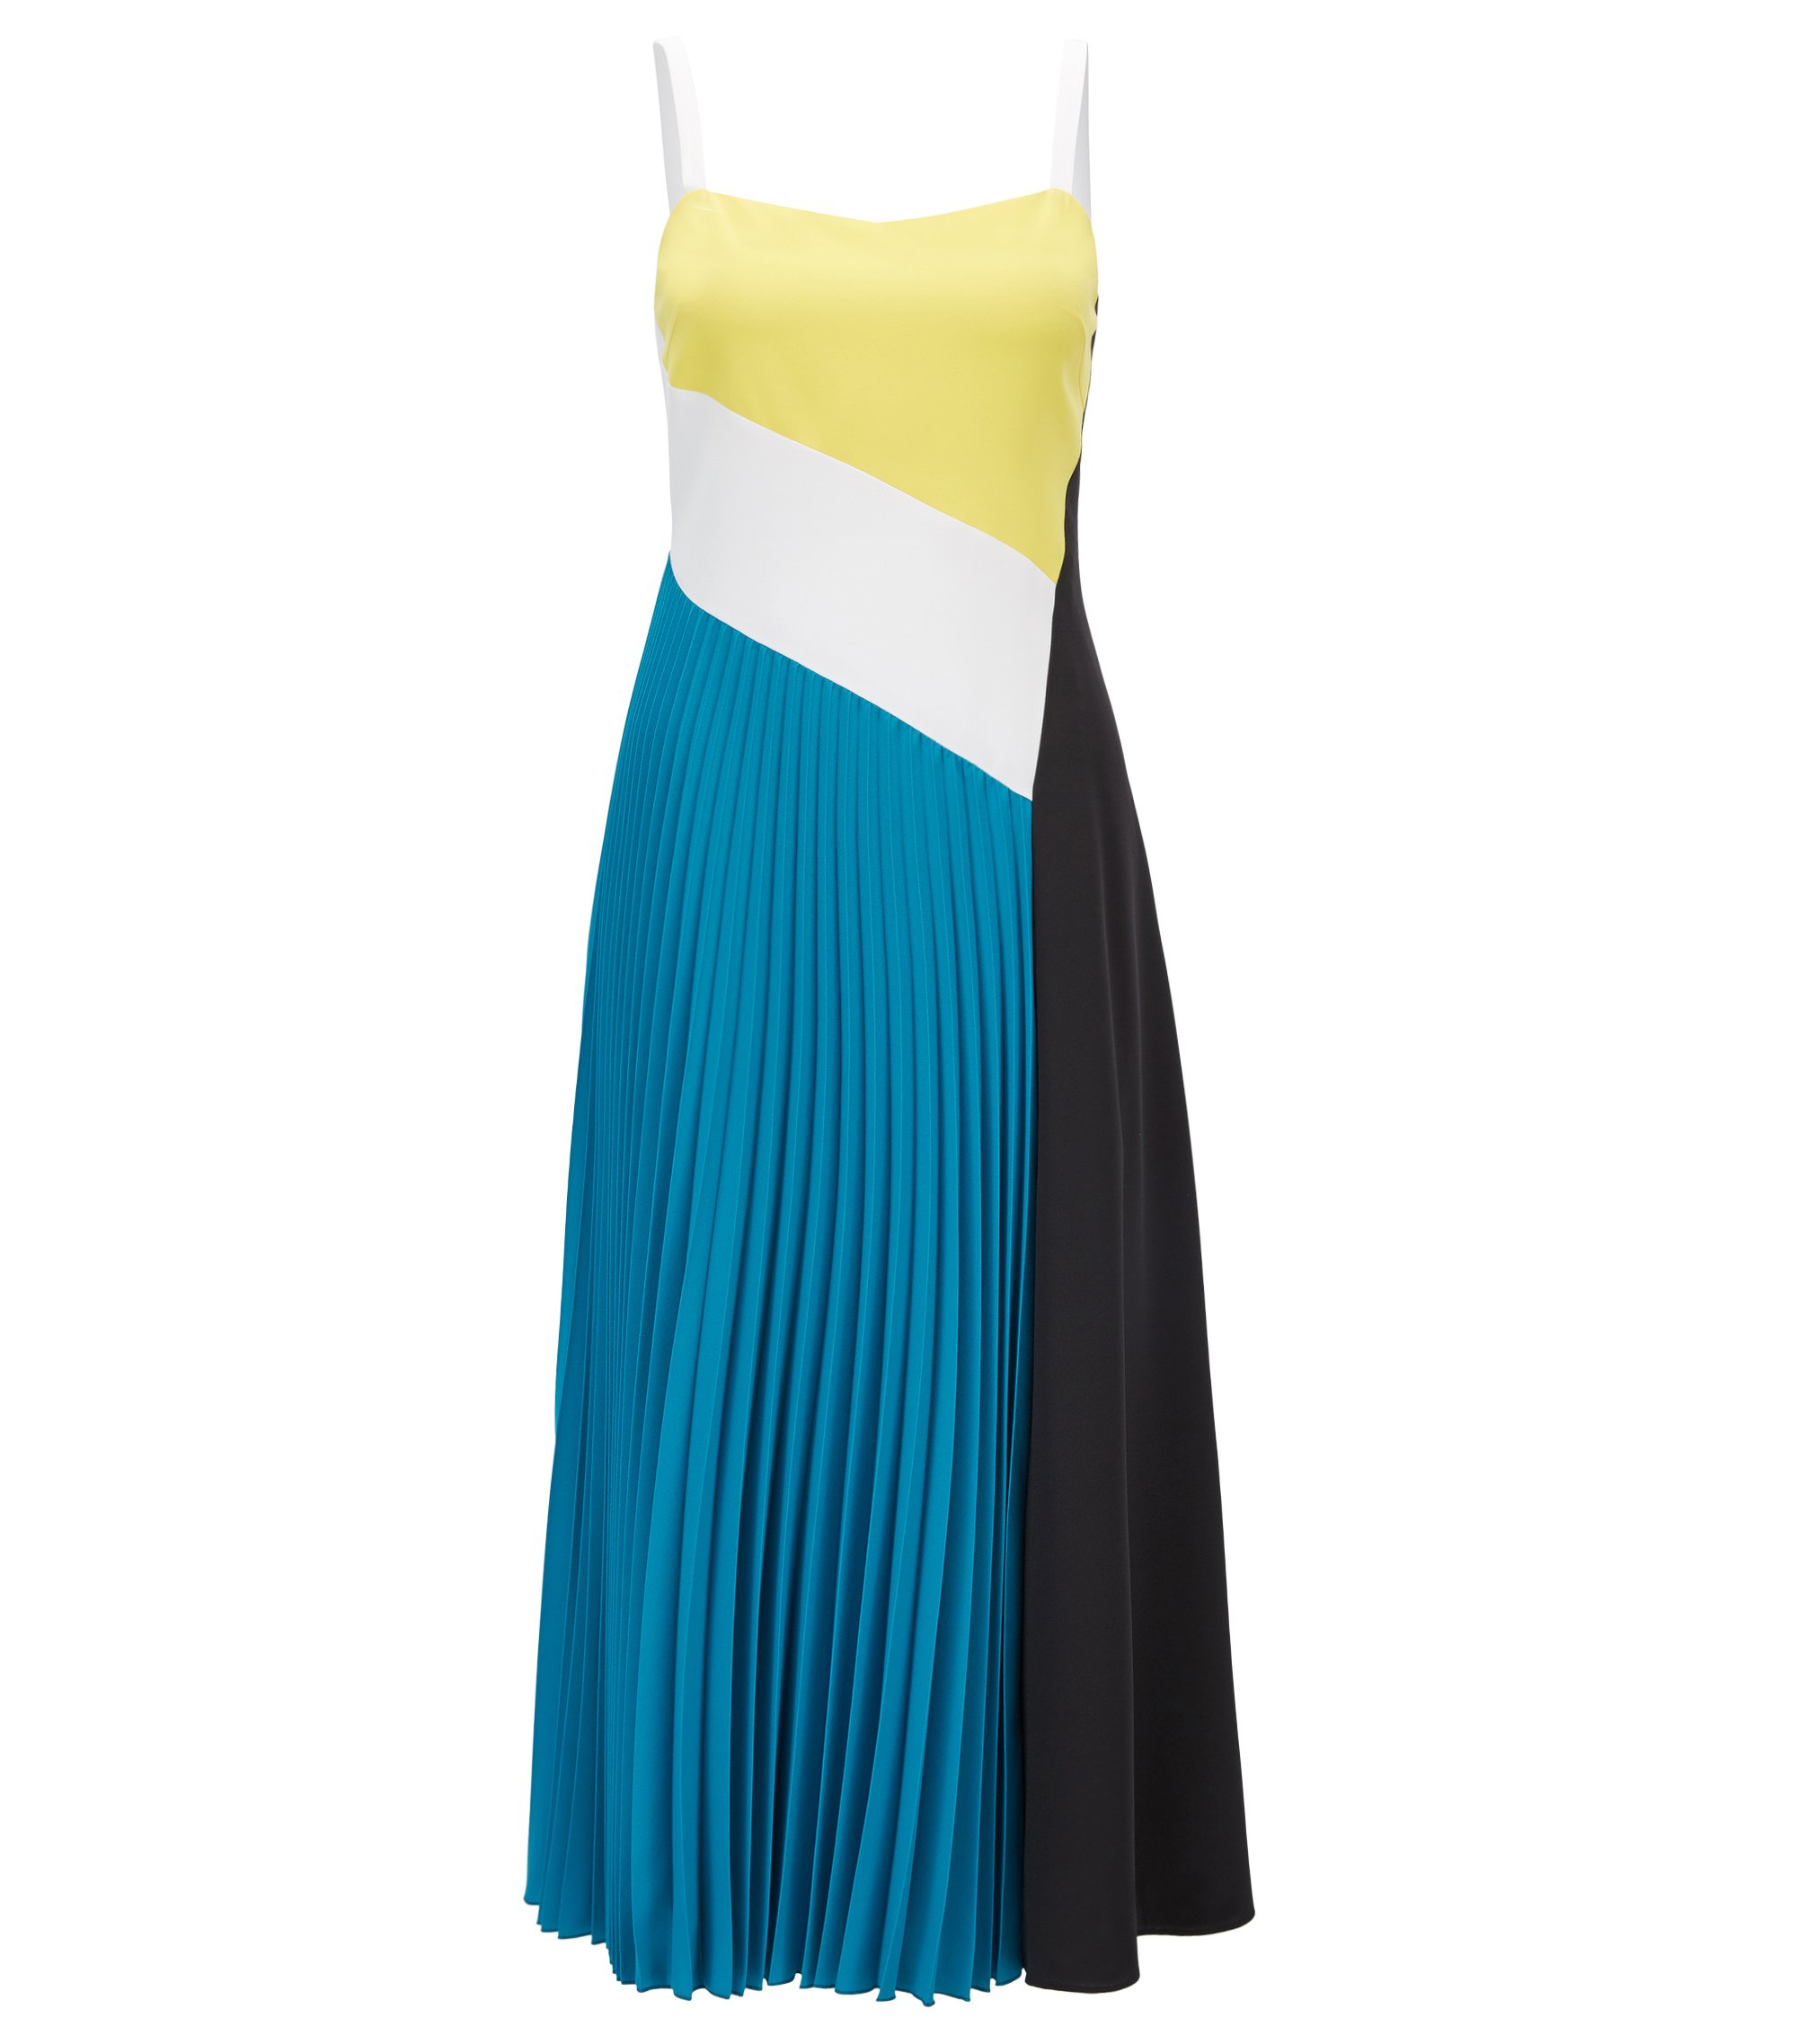 Colour-Block-Kleid aus elastischem Material-Mix aus der Gallery Kollektion, Gemustert